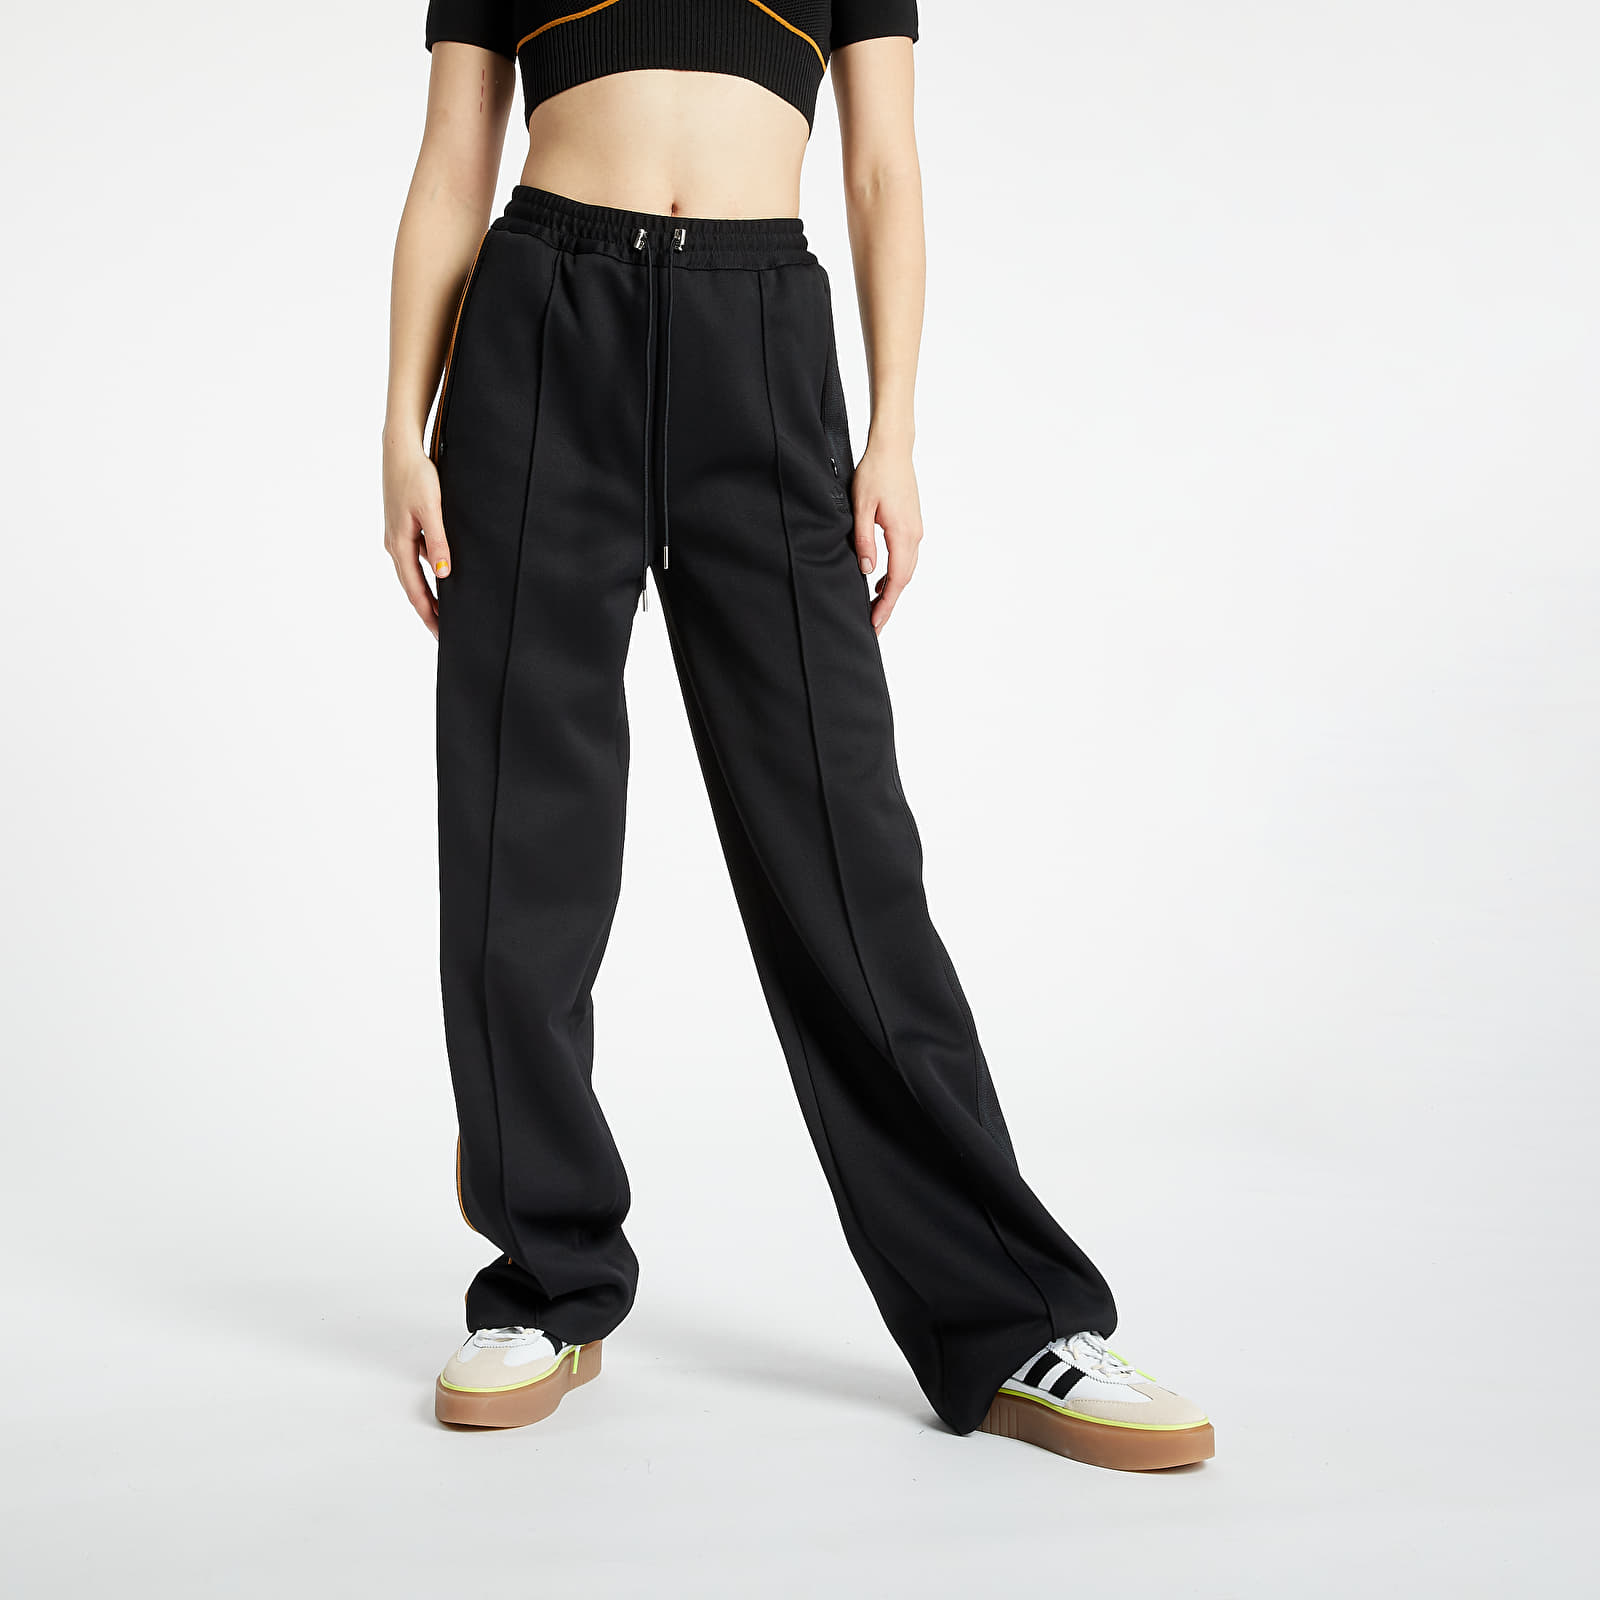 Pants and jeans adidas x Ivy Park Suit Pants (PLUS SIZE) Black